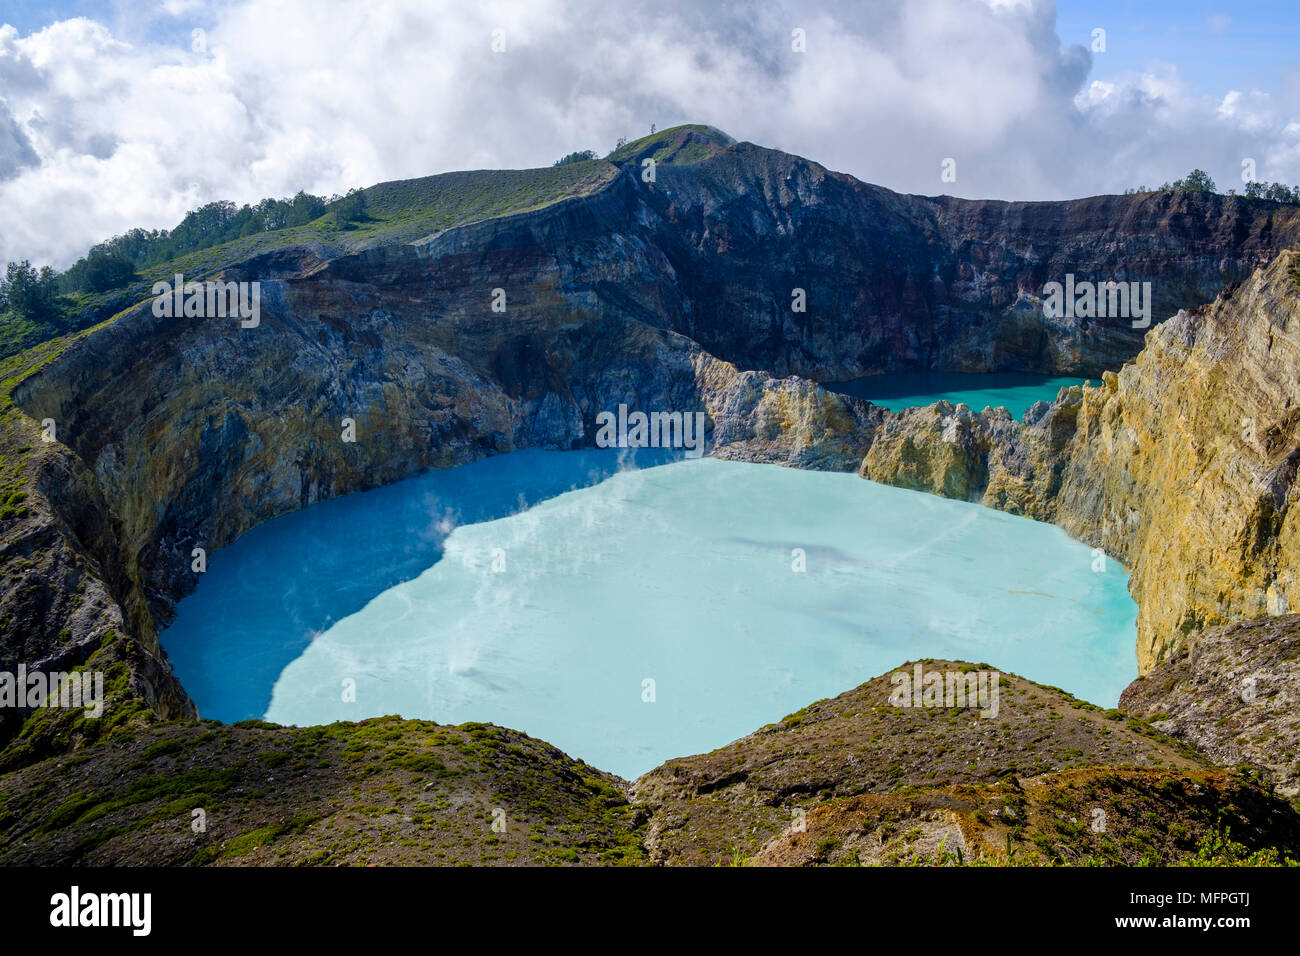 The two turquoise-coloured, eastern crater lakes at Mount Kelimutu, Ende Regency, Flores Island, Indonesia. - Stock Image